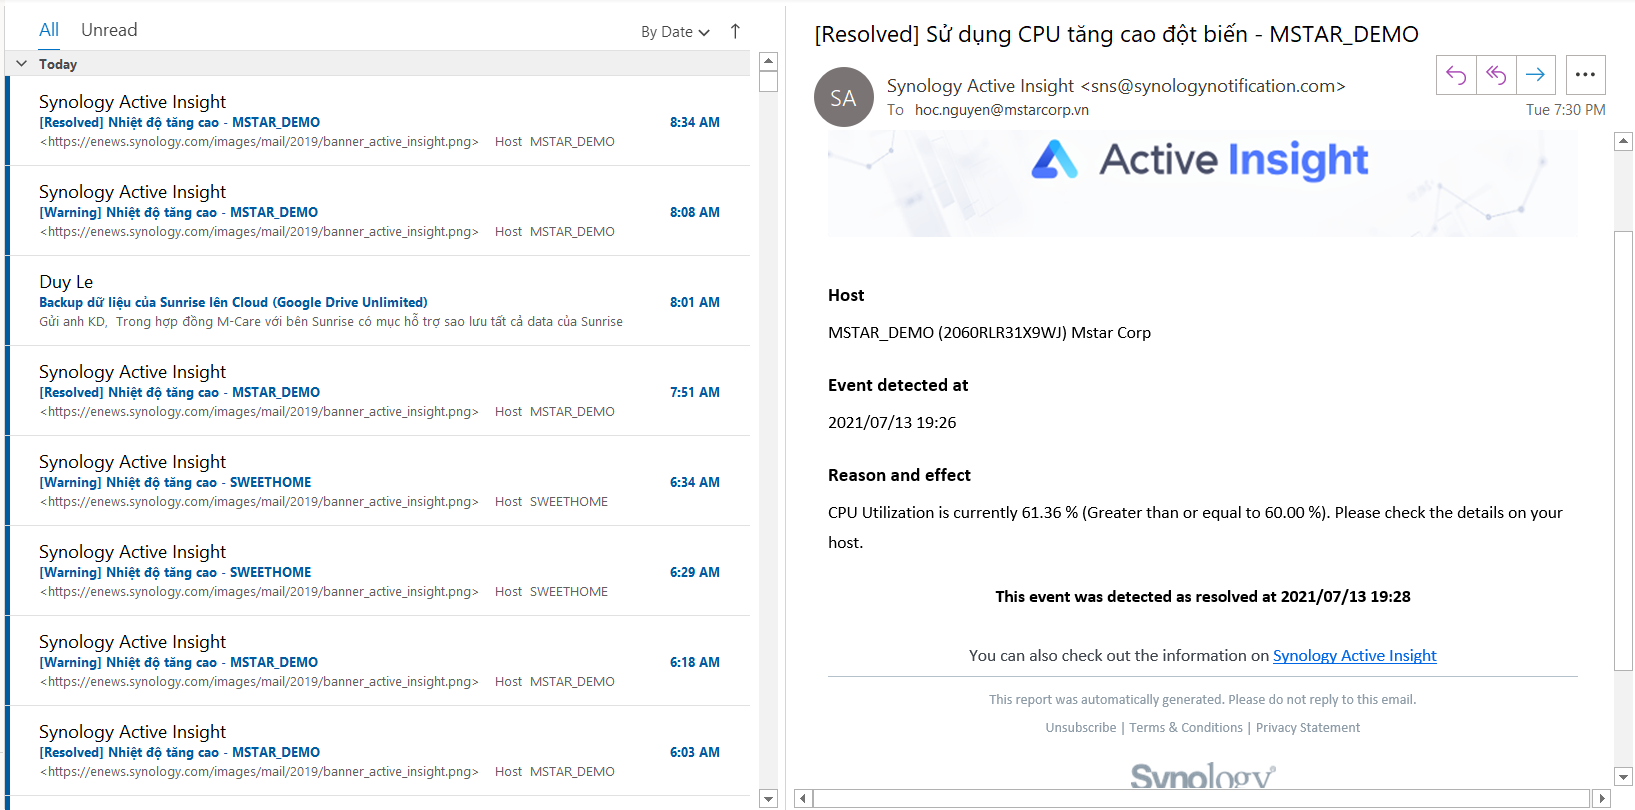 Synology active insight anh 5